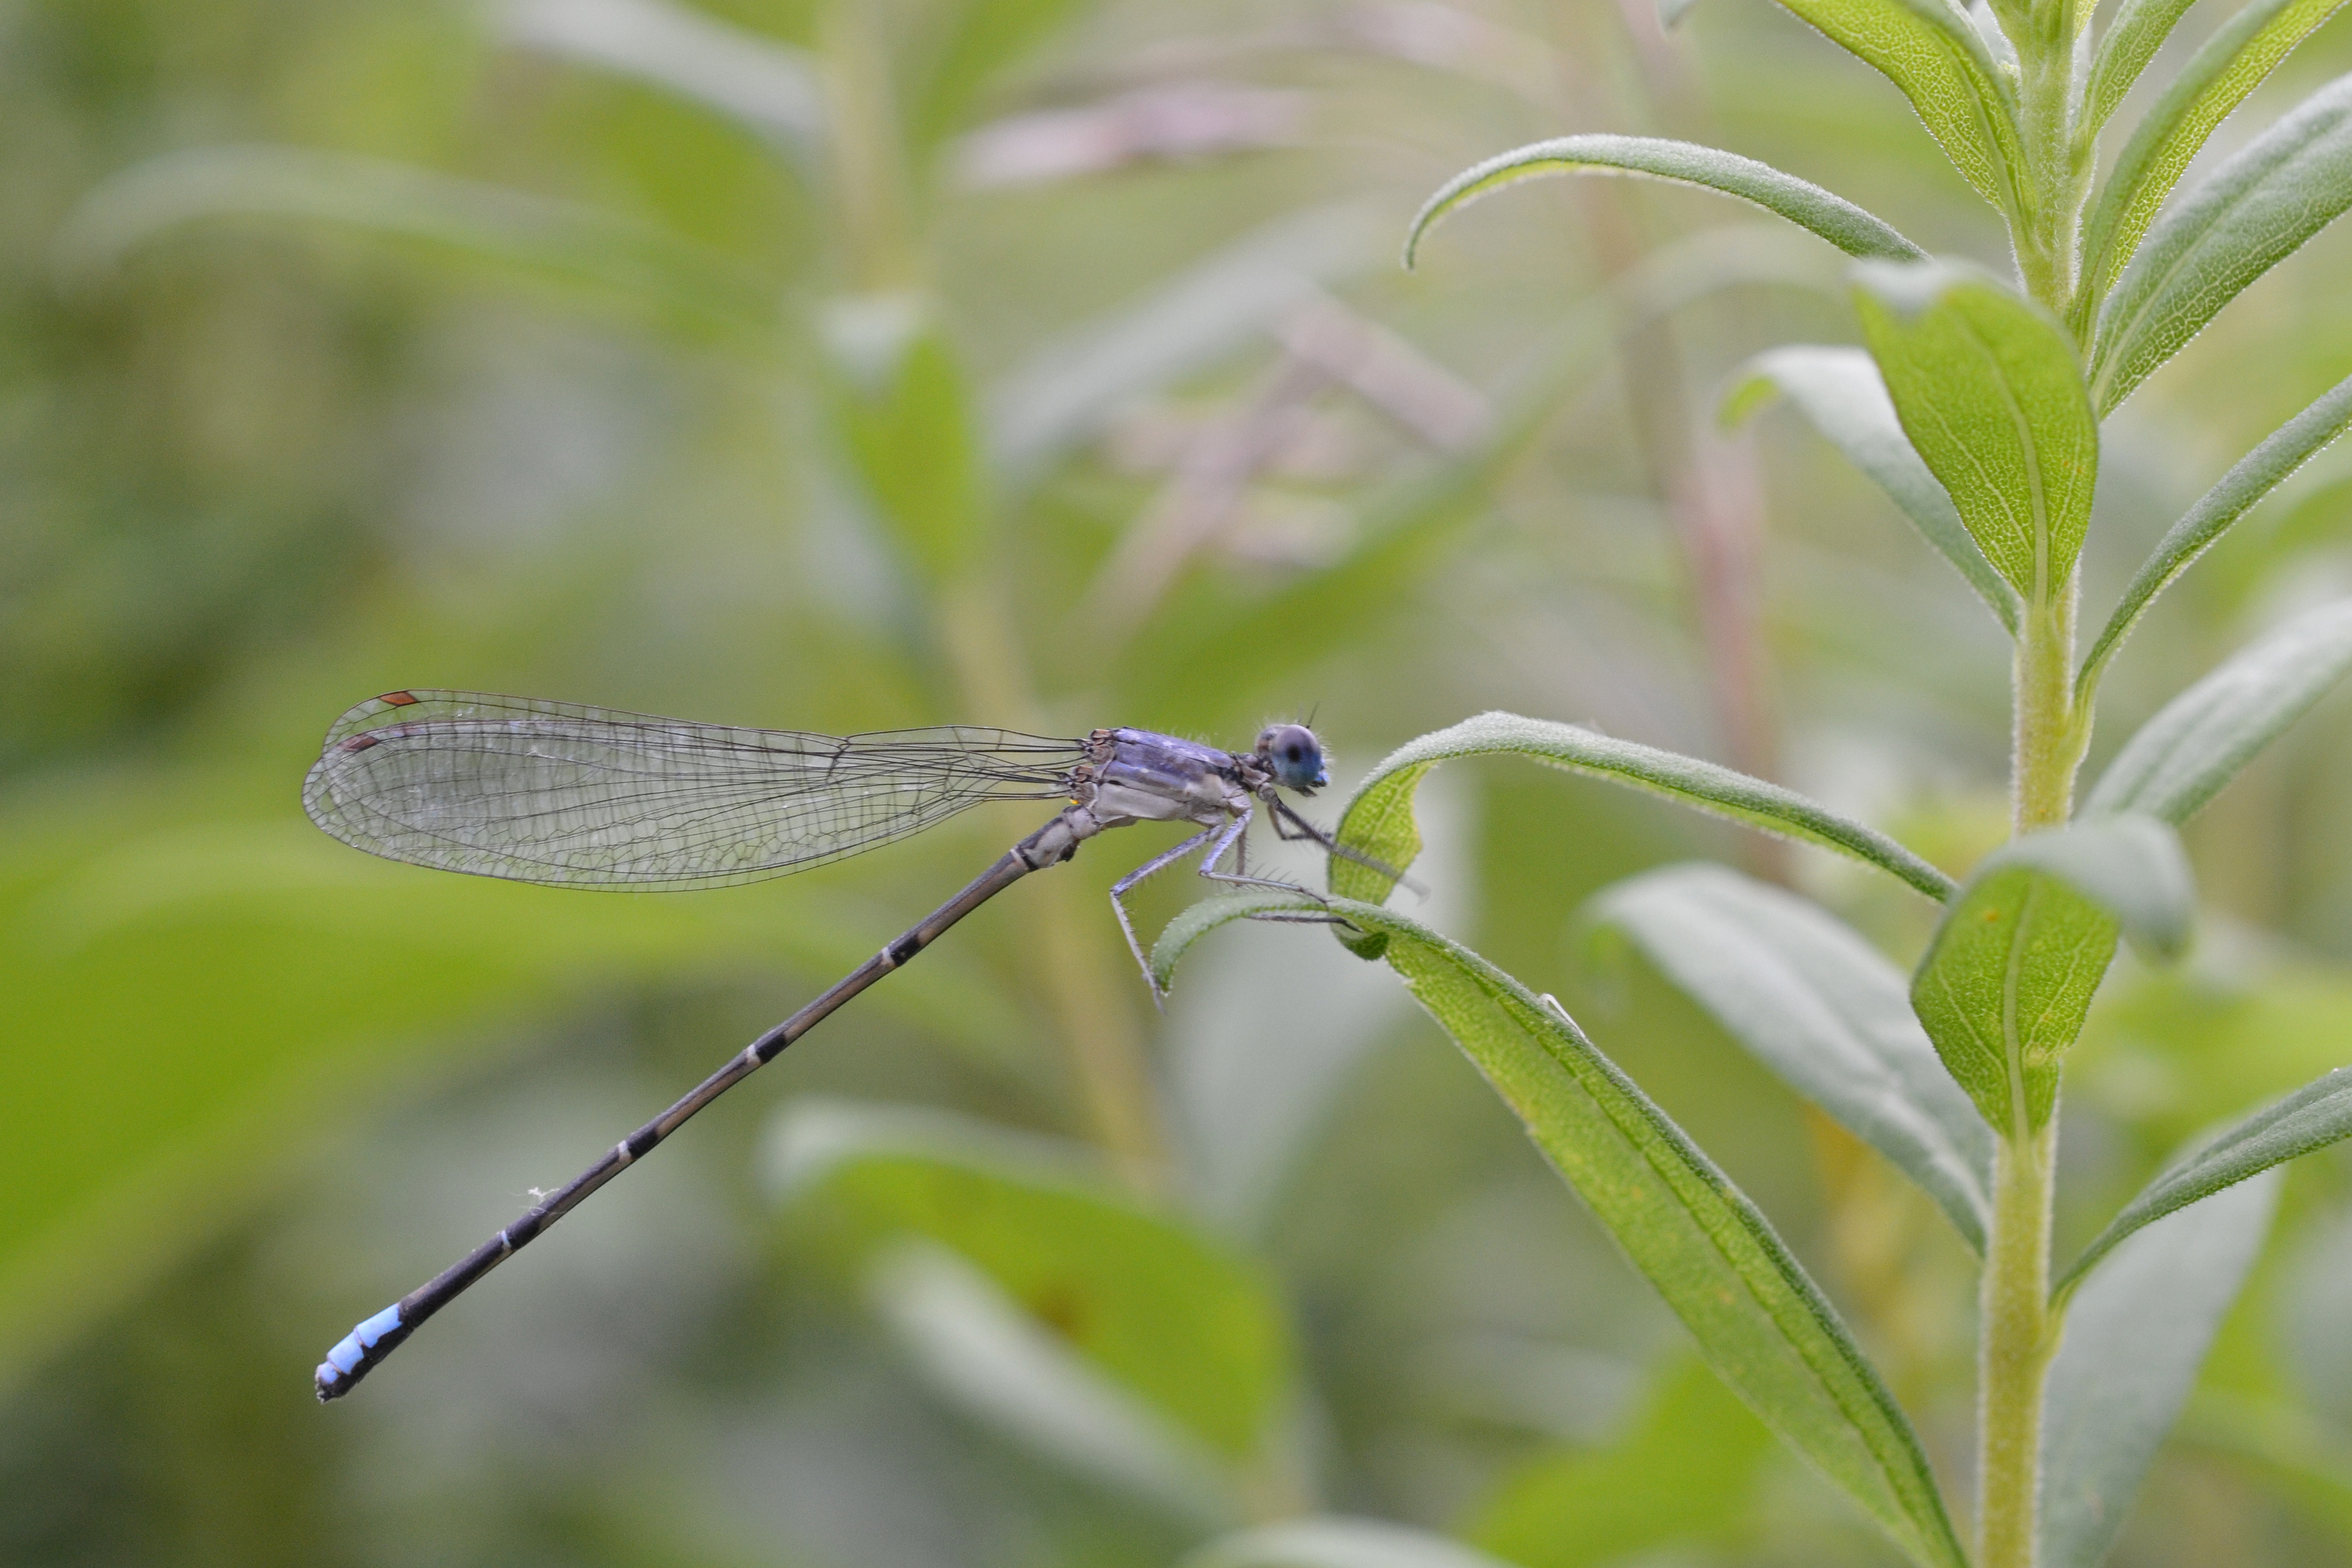 Female blue-fronted_D=dancer_(Argia_apicalis). Photo taken at Rentschler Forest Metropark, Fairfield, Ohio, on August 7, 2014.